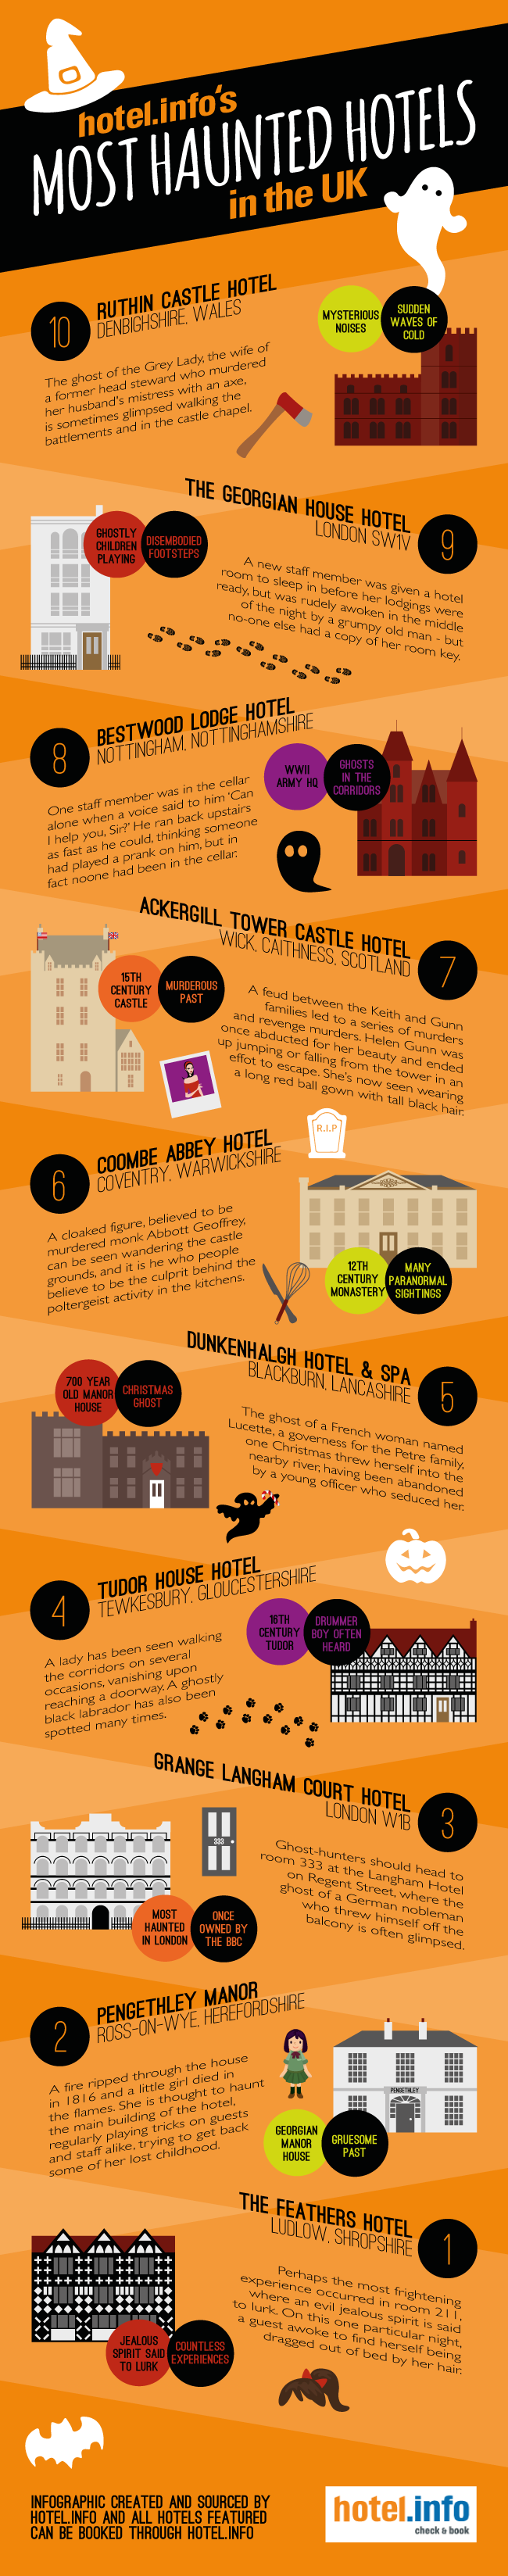 Most Haunted Hotels in the UK by Hotel.info